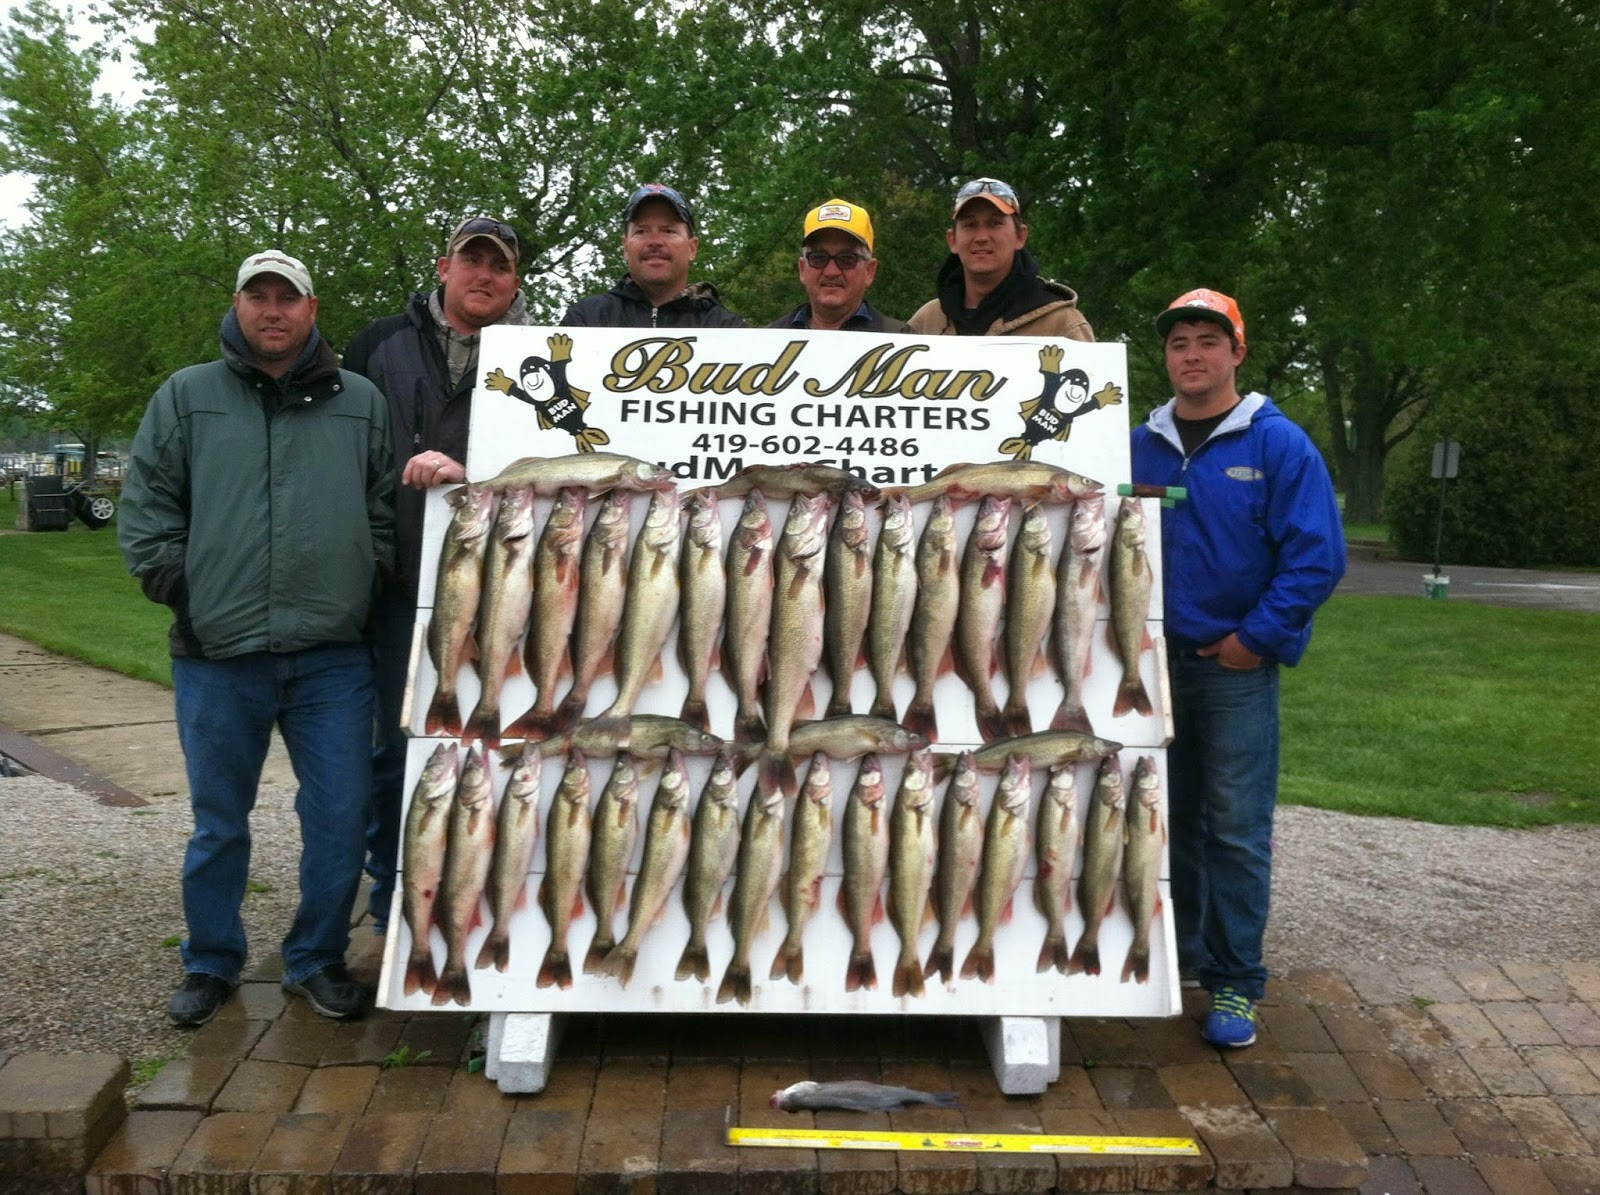 Lake erie walleye fishing reports may 2014 for Odnr fishing report